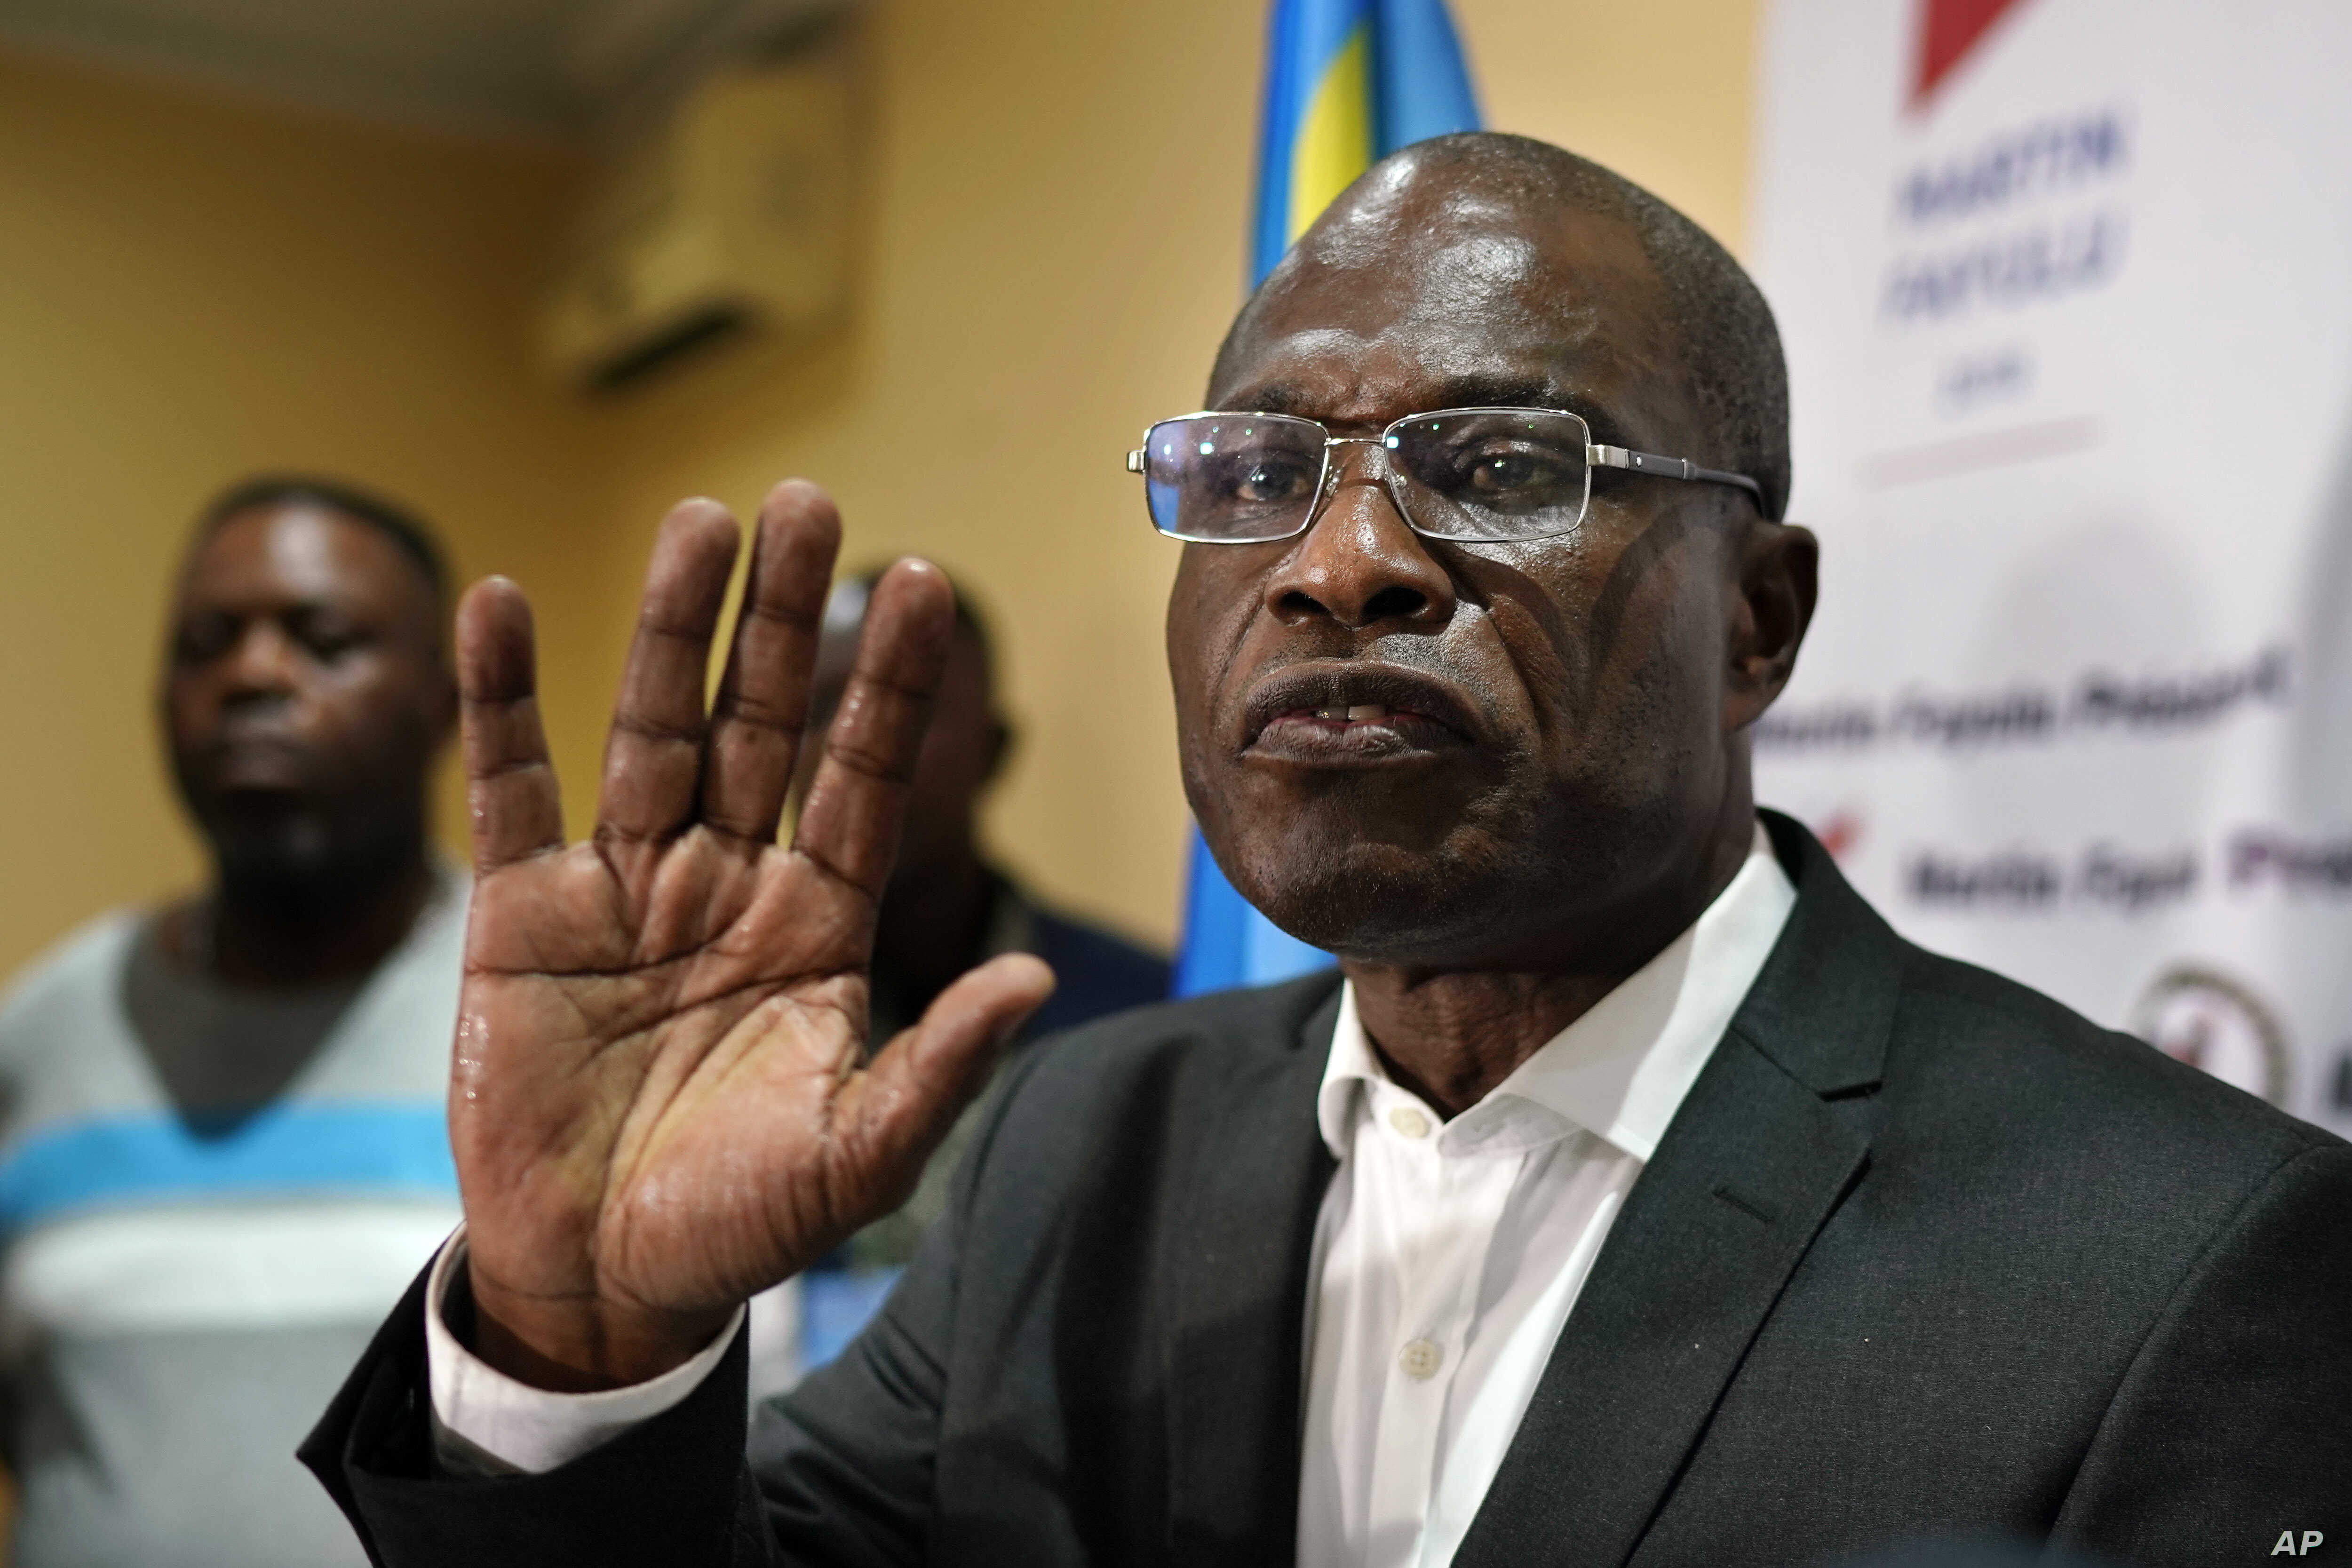 Opposition candidate Martin Fayulu speaks to the press at his headquarters in Kinshasa, Congo, Jan. 10, 2019.